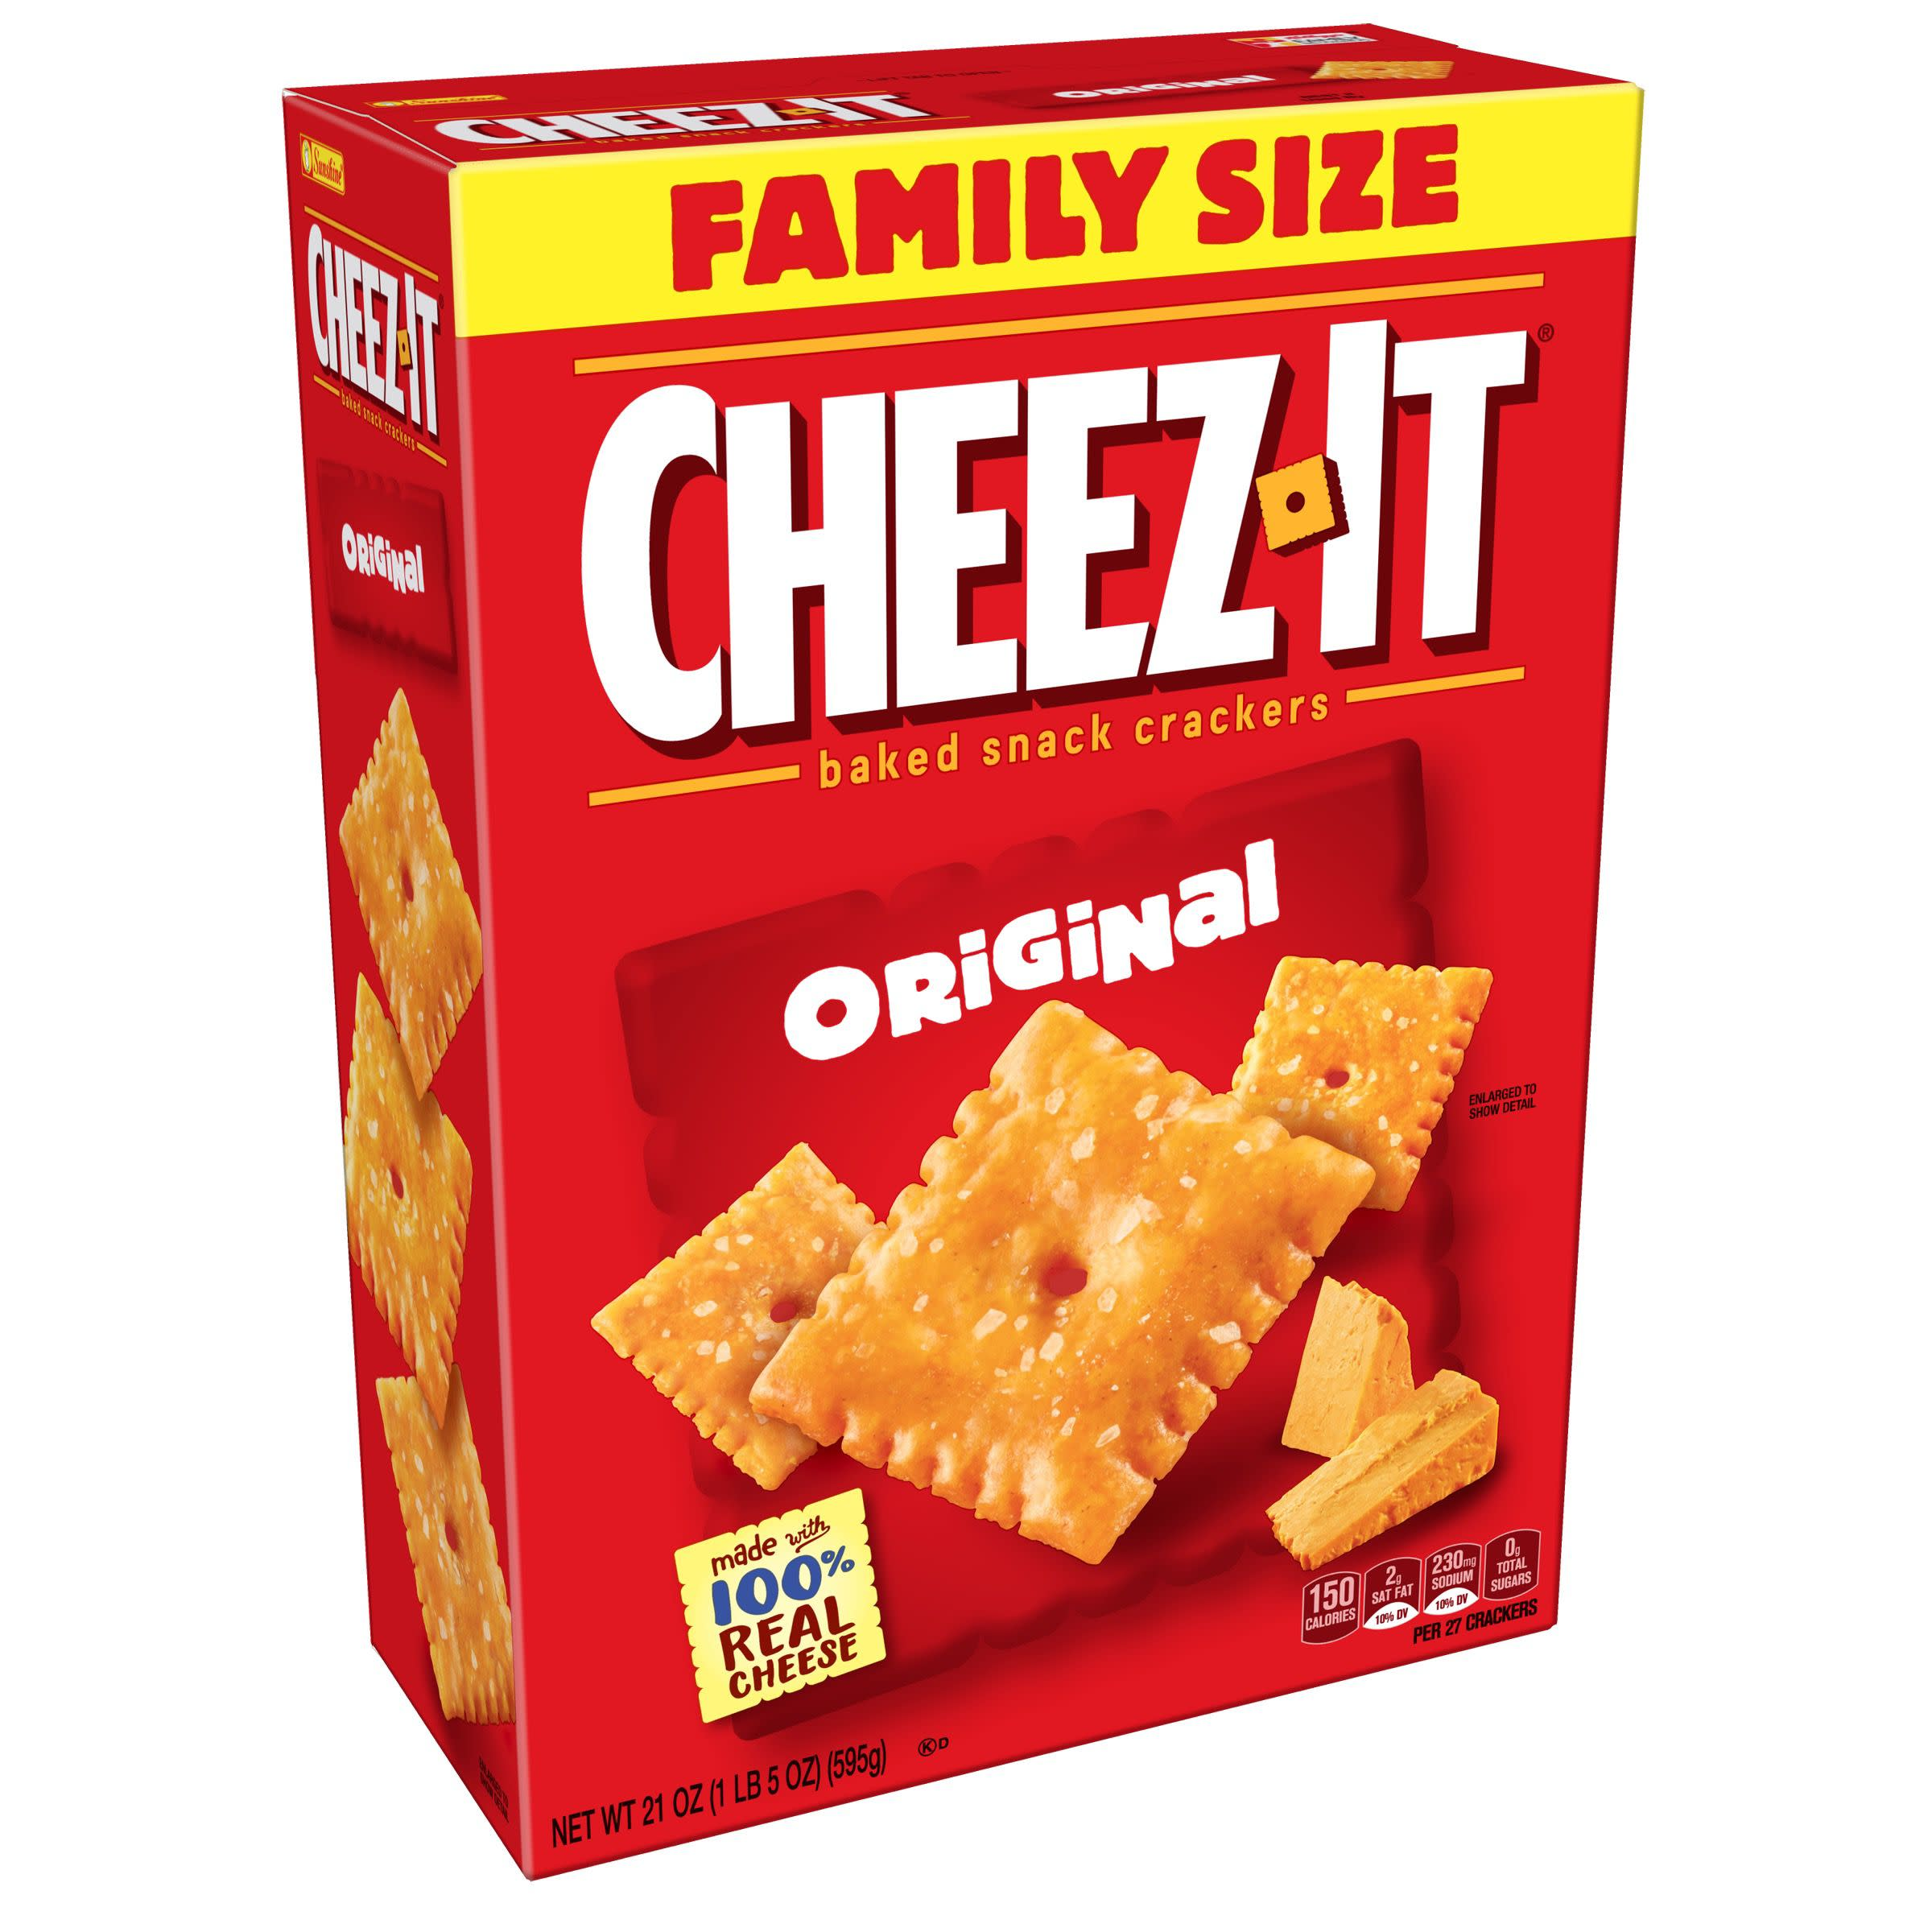 Cheez-It Baked Snack Cheese Crackers Original Family Size, 21 oz